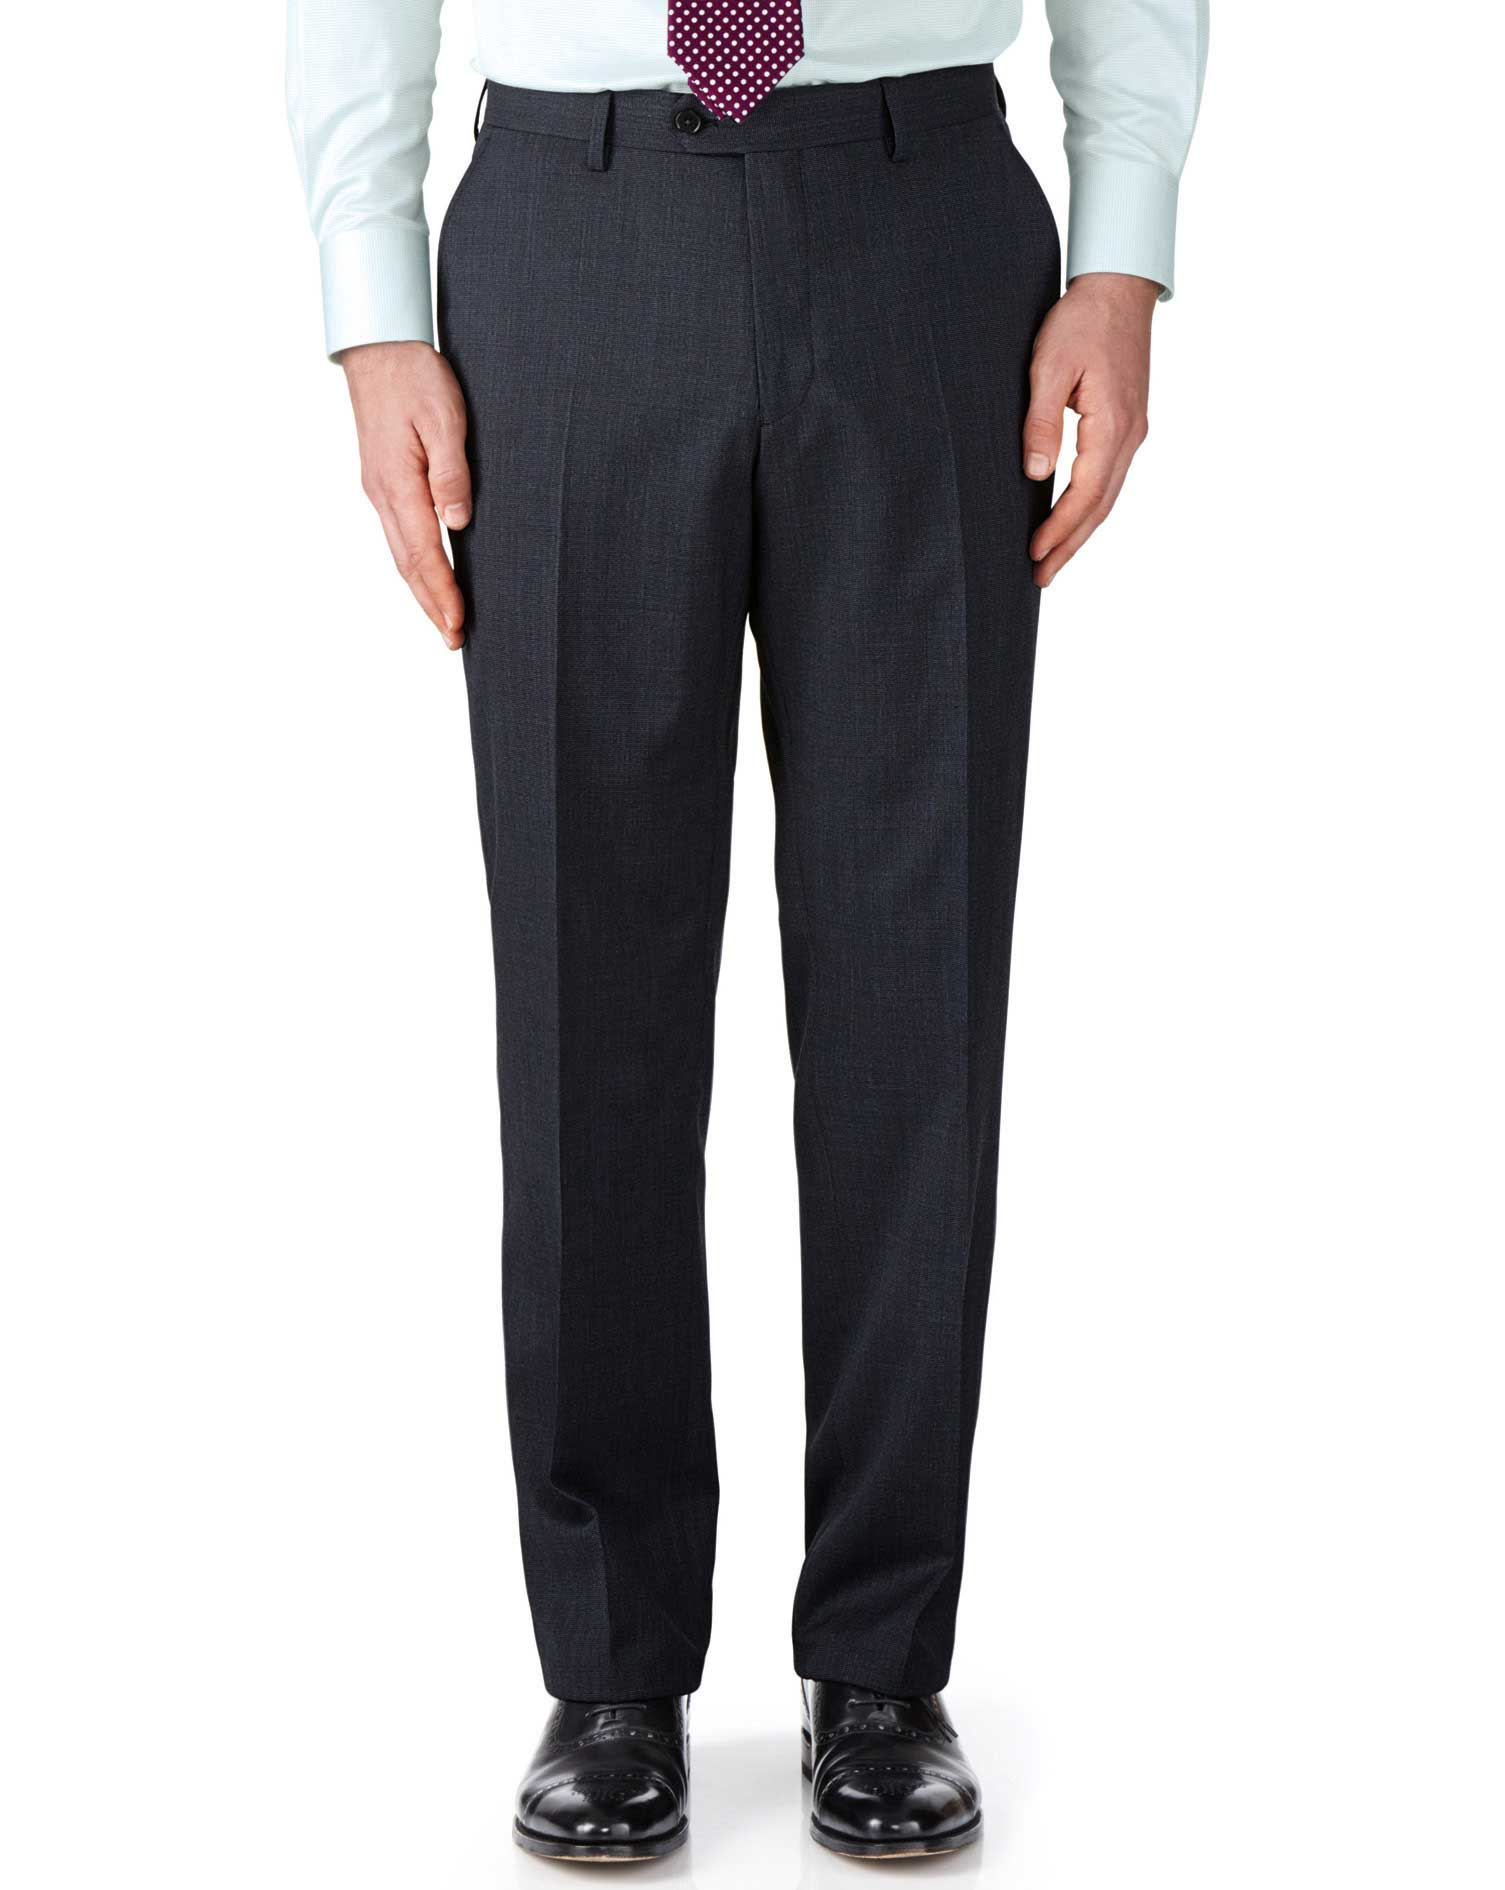 Navy Classic Fit End-On-End Business Suit Trousers Size W40 L38 by Charles Tyrwhitt